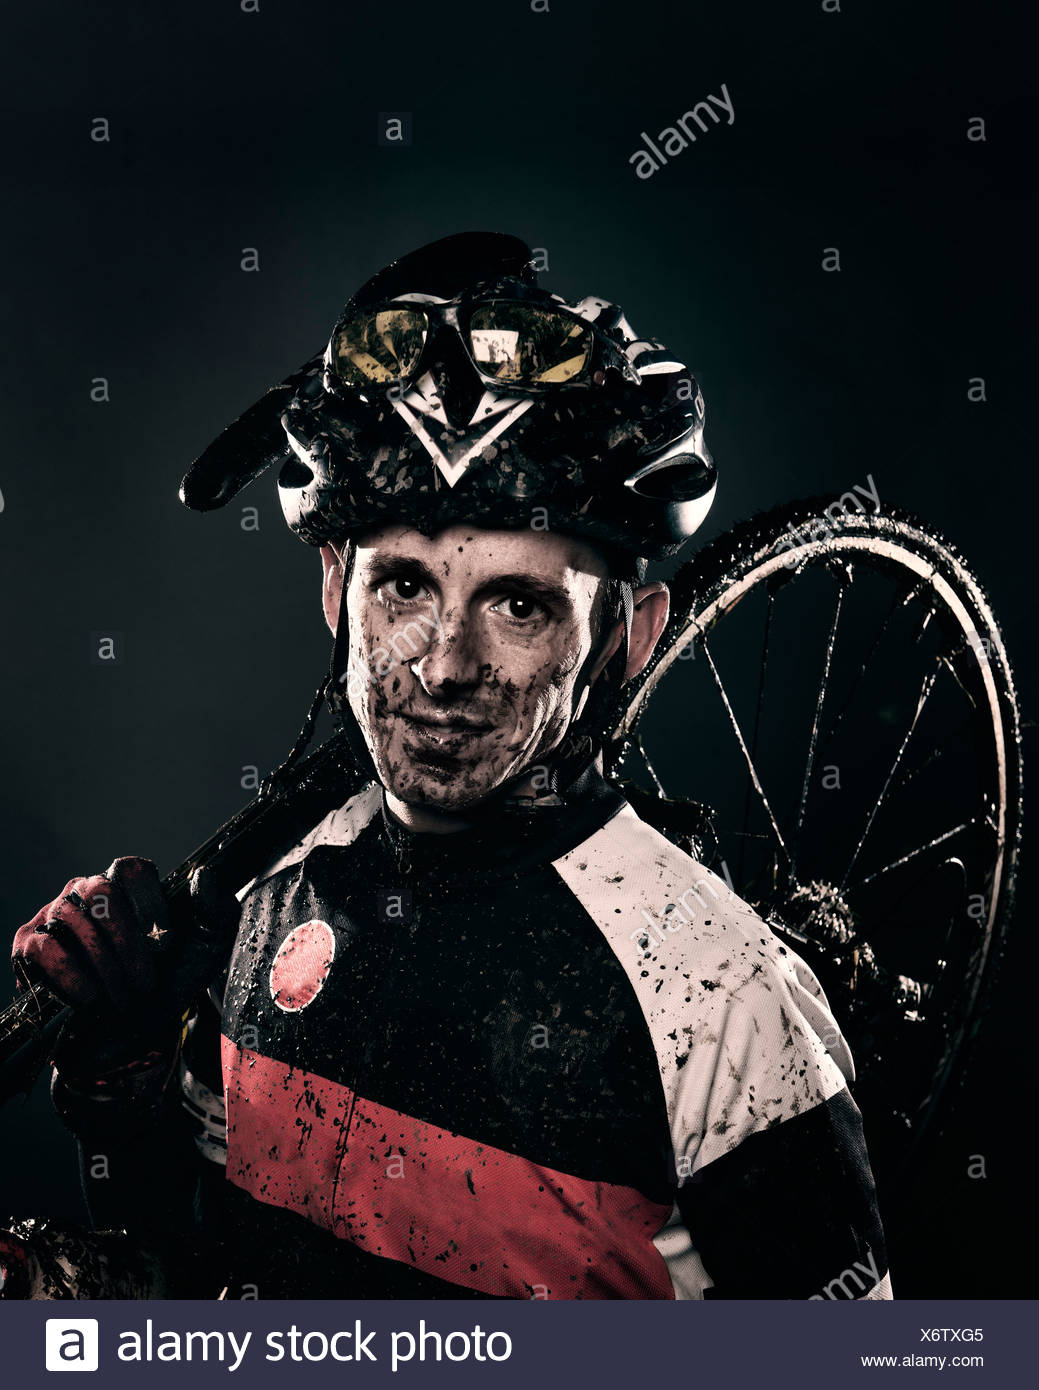 Mud splattered cyclist carrying bicycle - Stock Image